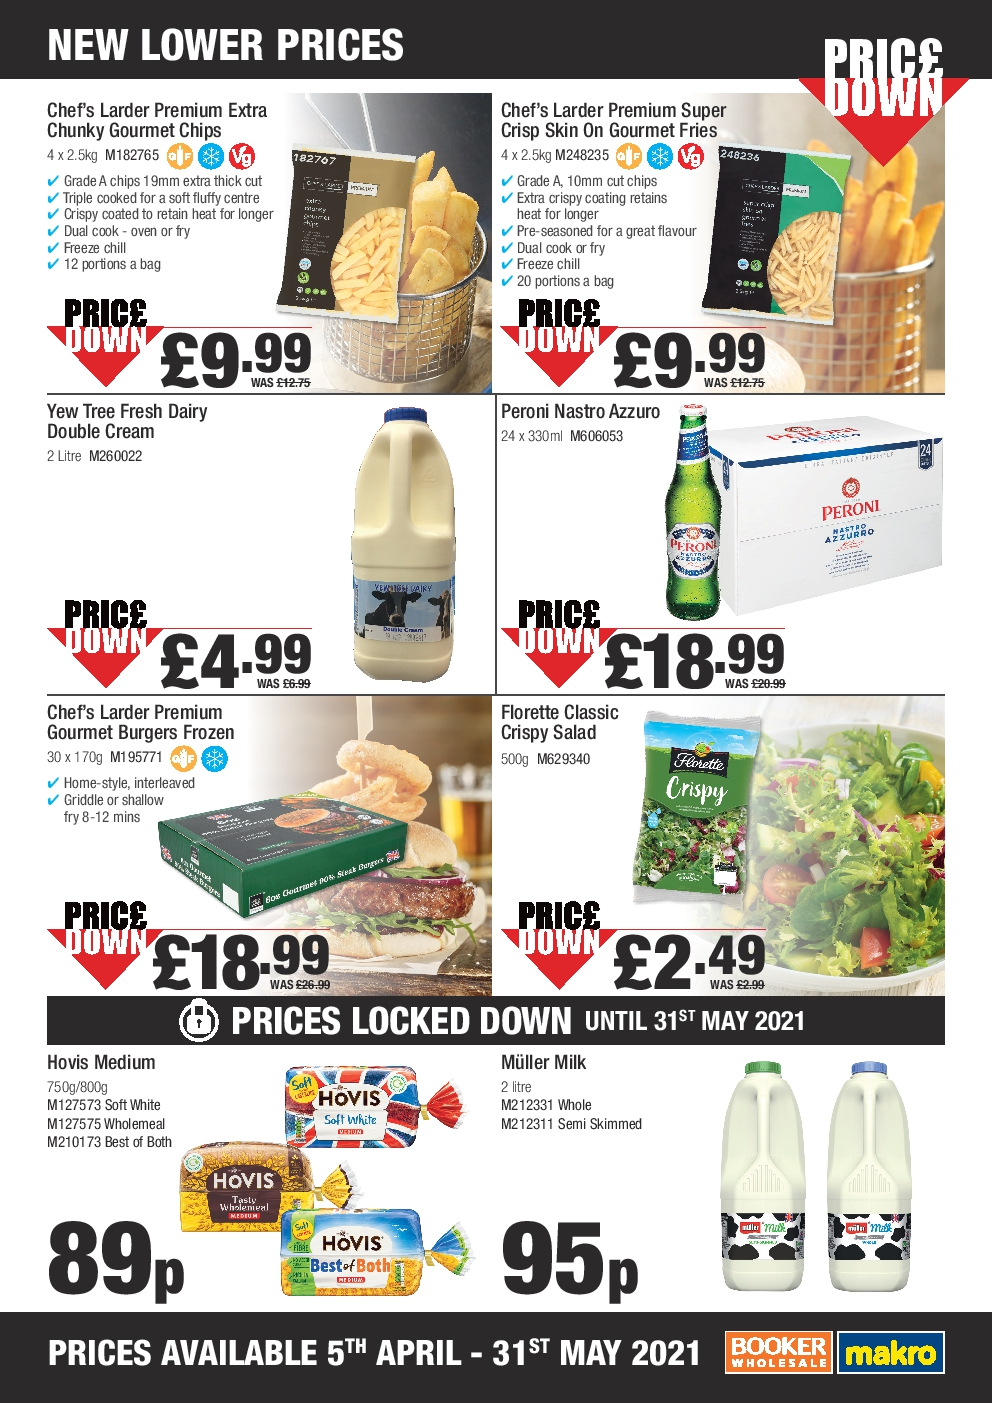 Makro Offers from 5th April - 31st May 2021